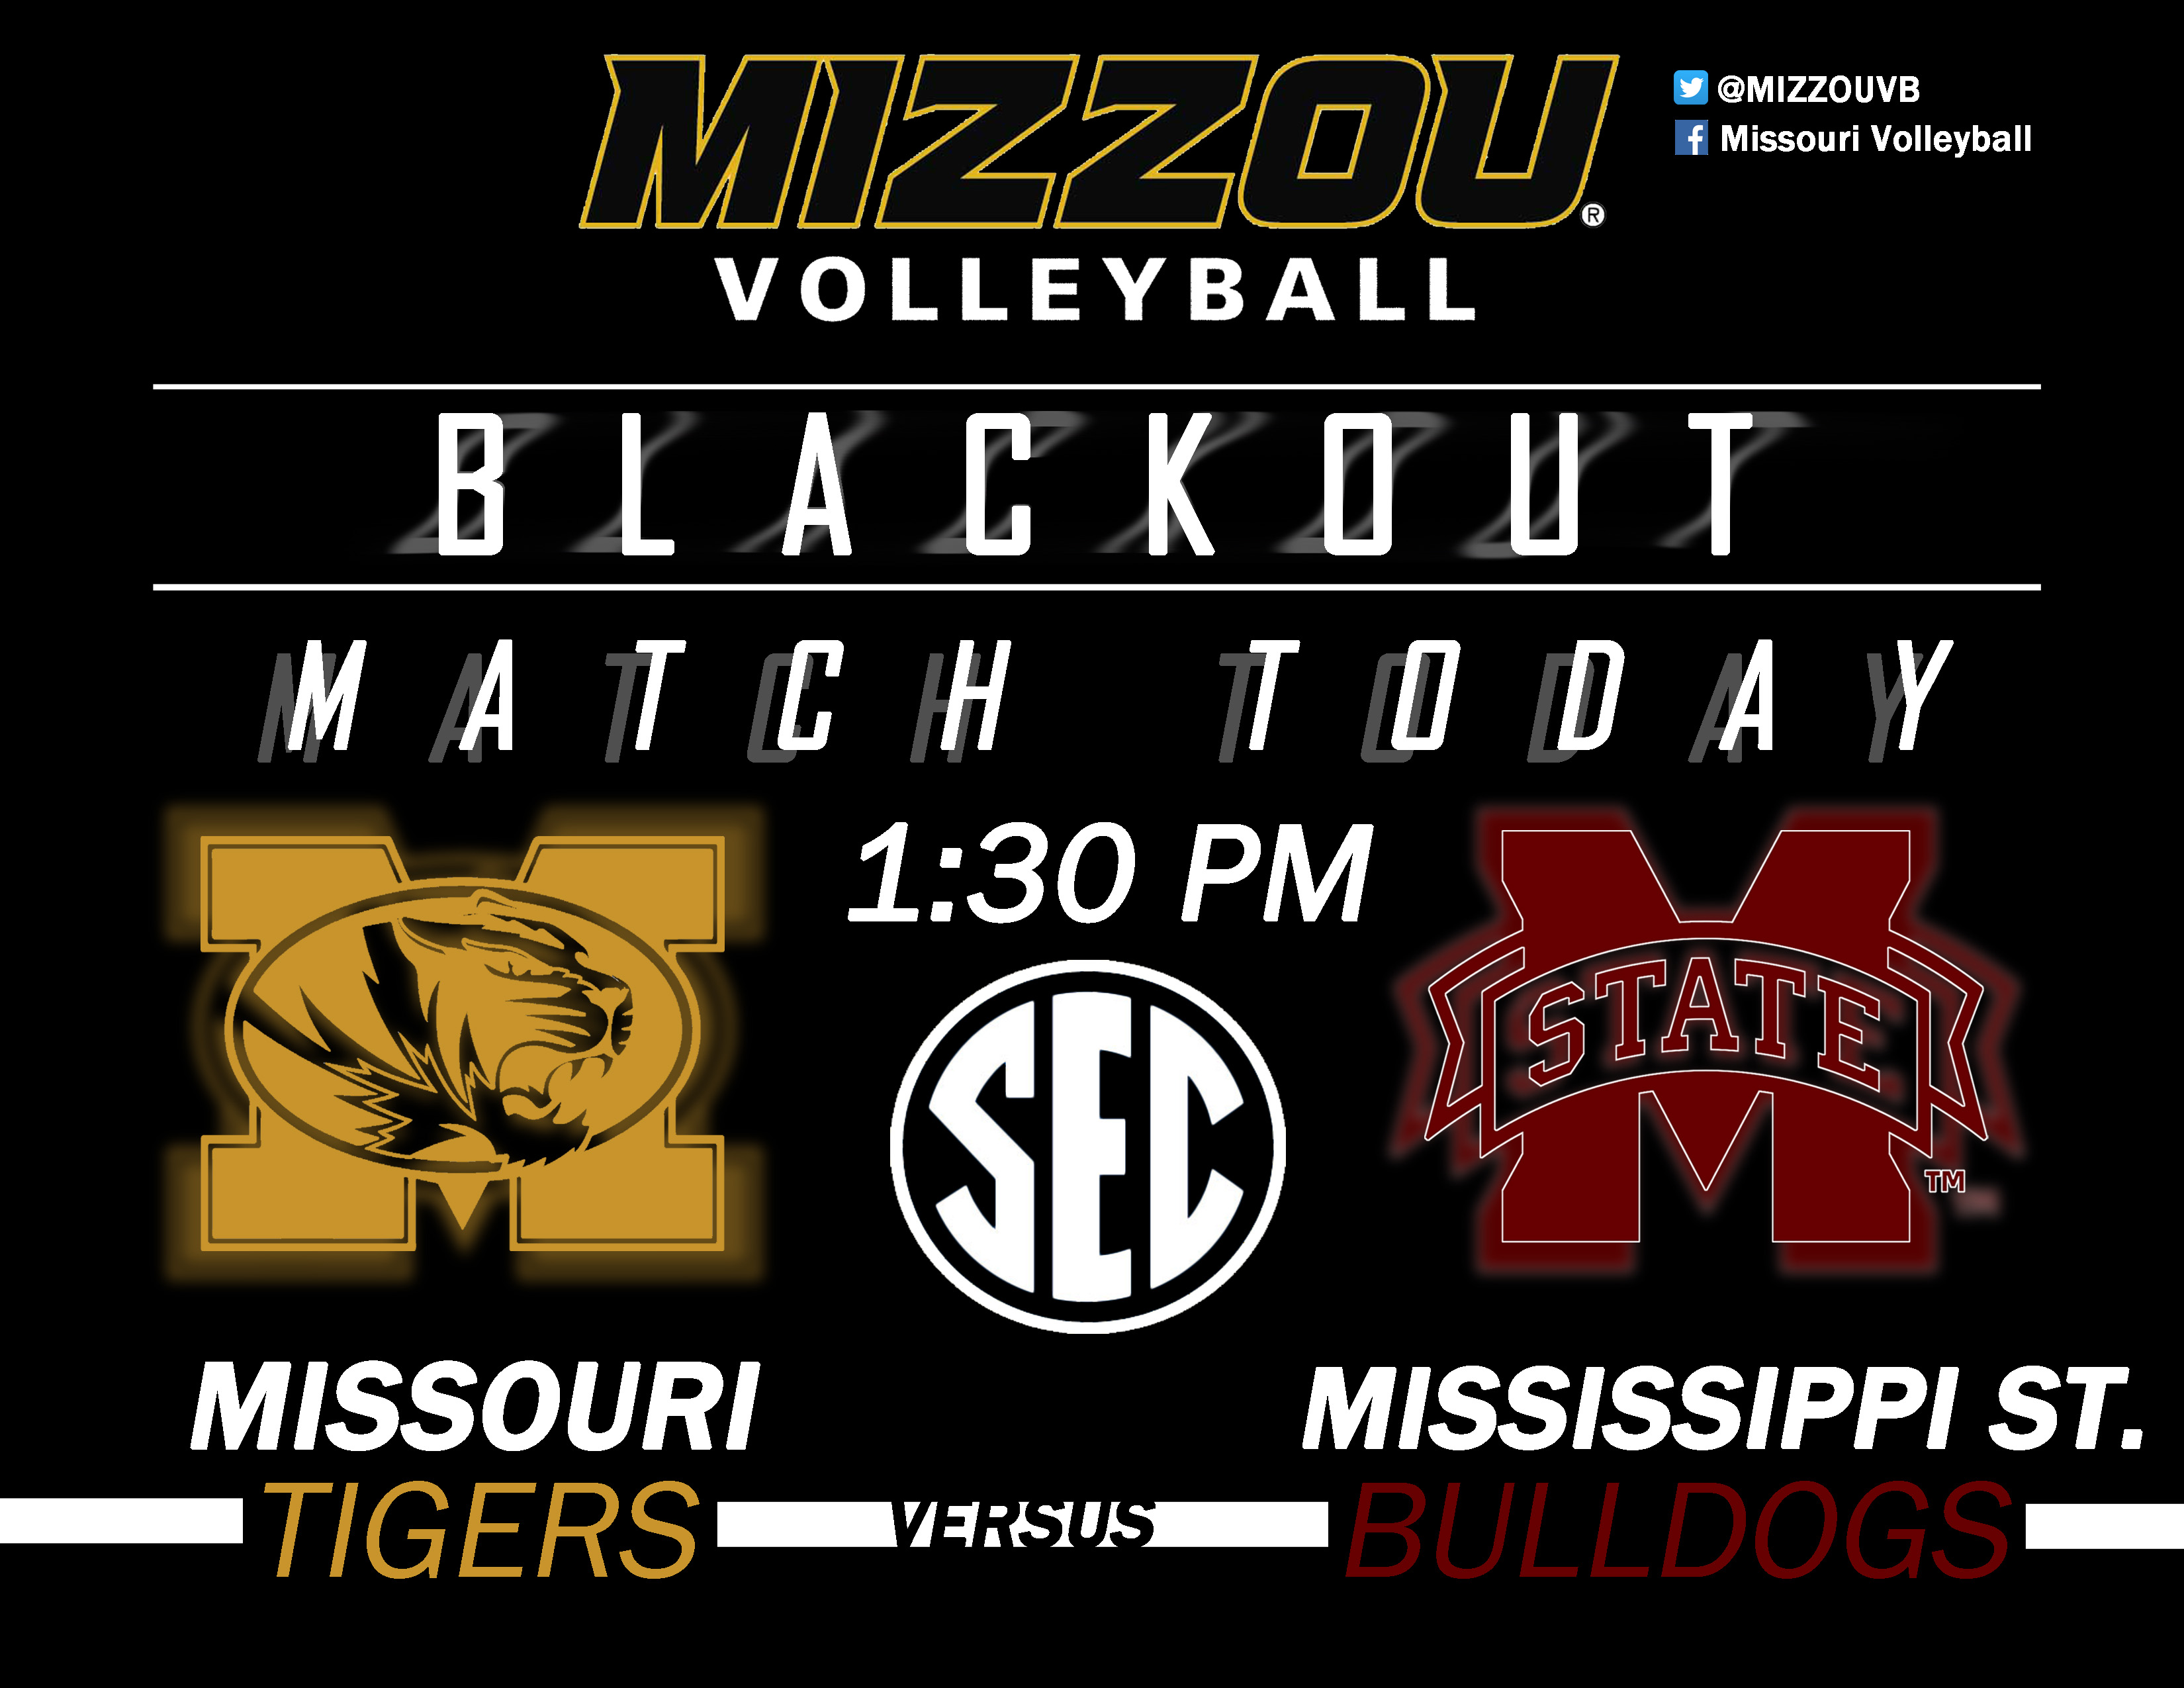 SEC Volleyball Match Flyer